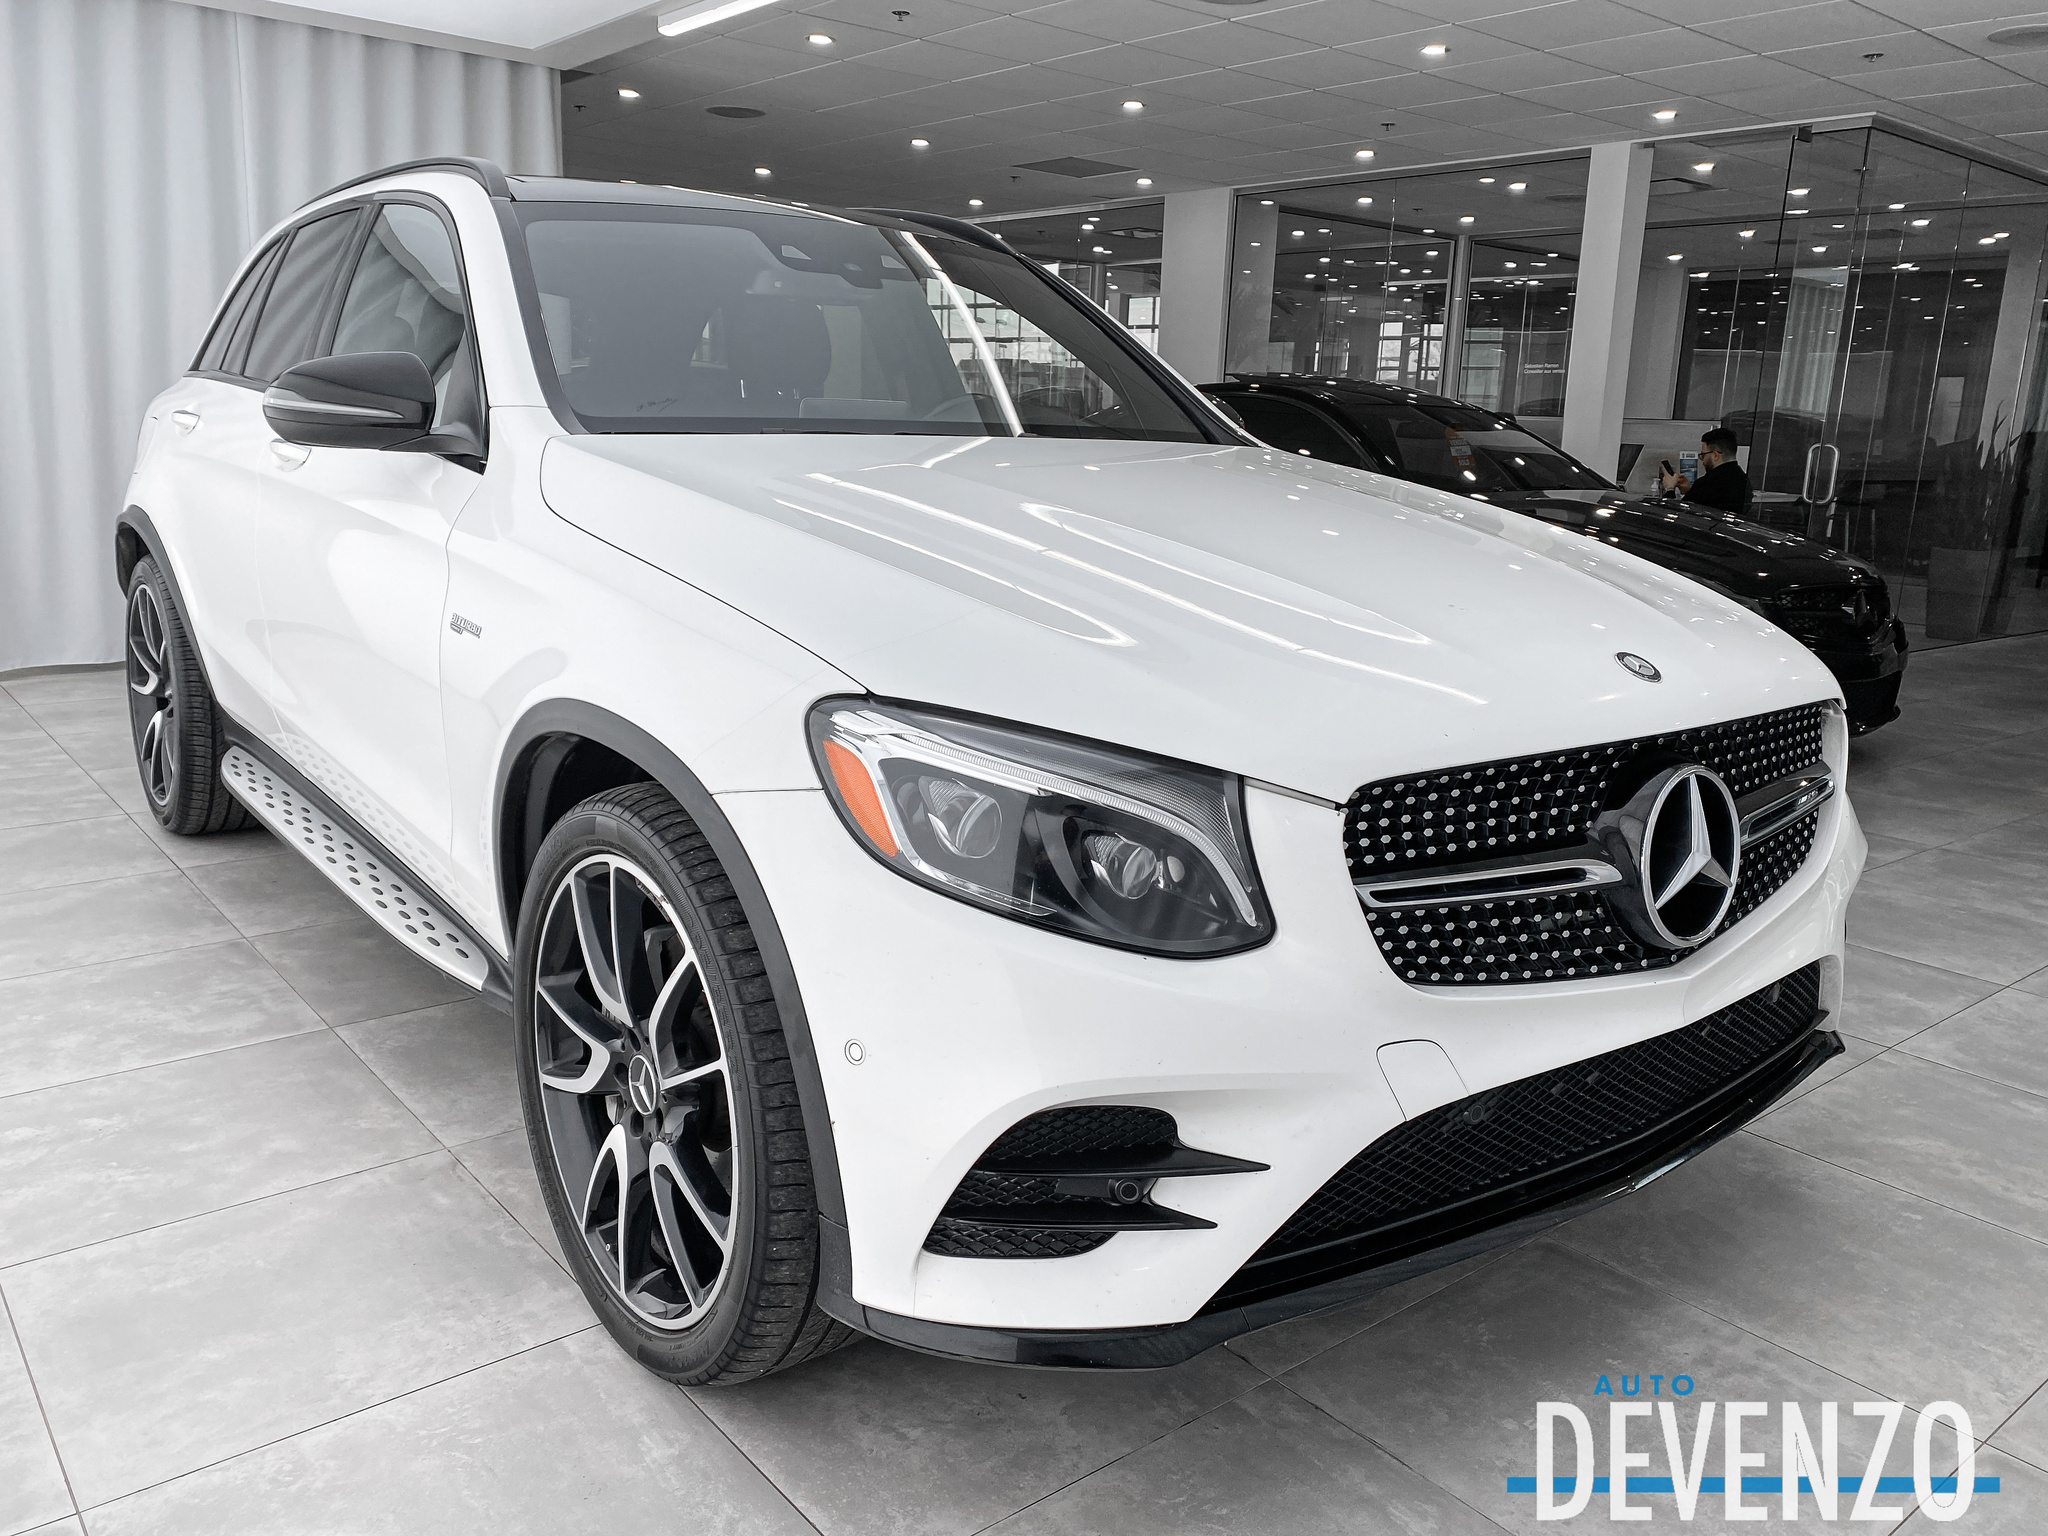 2017 Mercedes-Benz GLC 4MATIC AMG GLC43 362HP NIGHT PACKAGE FULL LEATHER complet